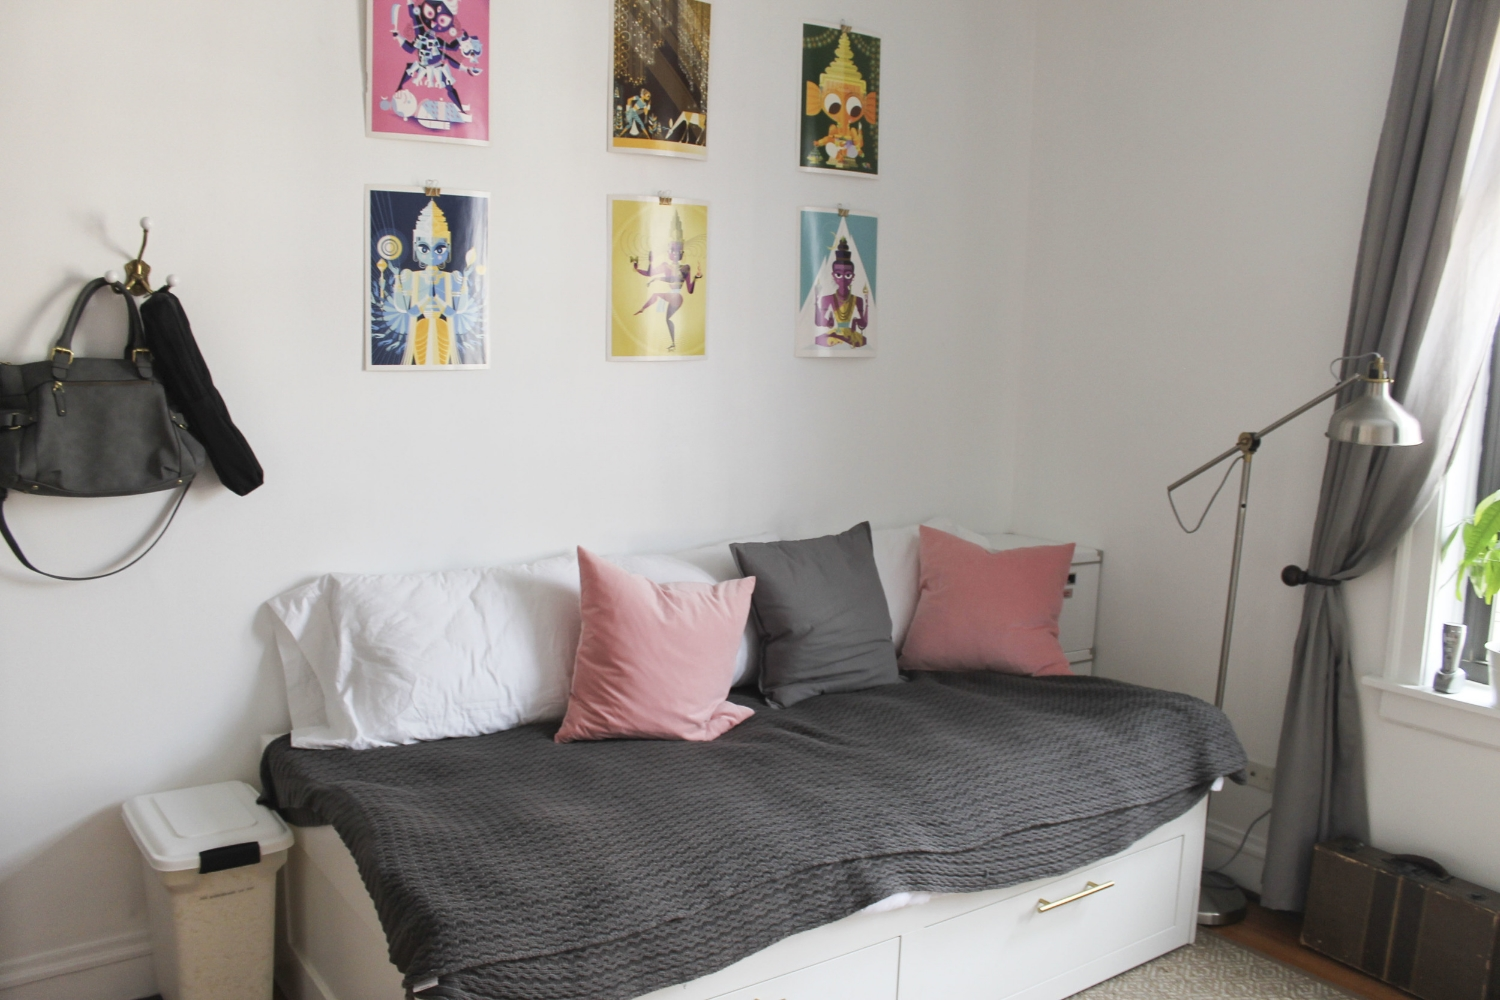 After | Daybed -  Ikea  with replaced  handles  | Wall Art - ' The Big Book of Hindu Deities by Sanjay Patel ' |Lamp -  Ikea  | Camera Bag - Target Purse